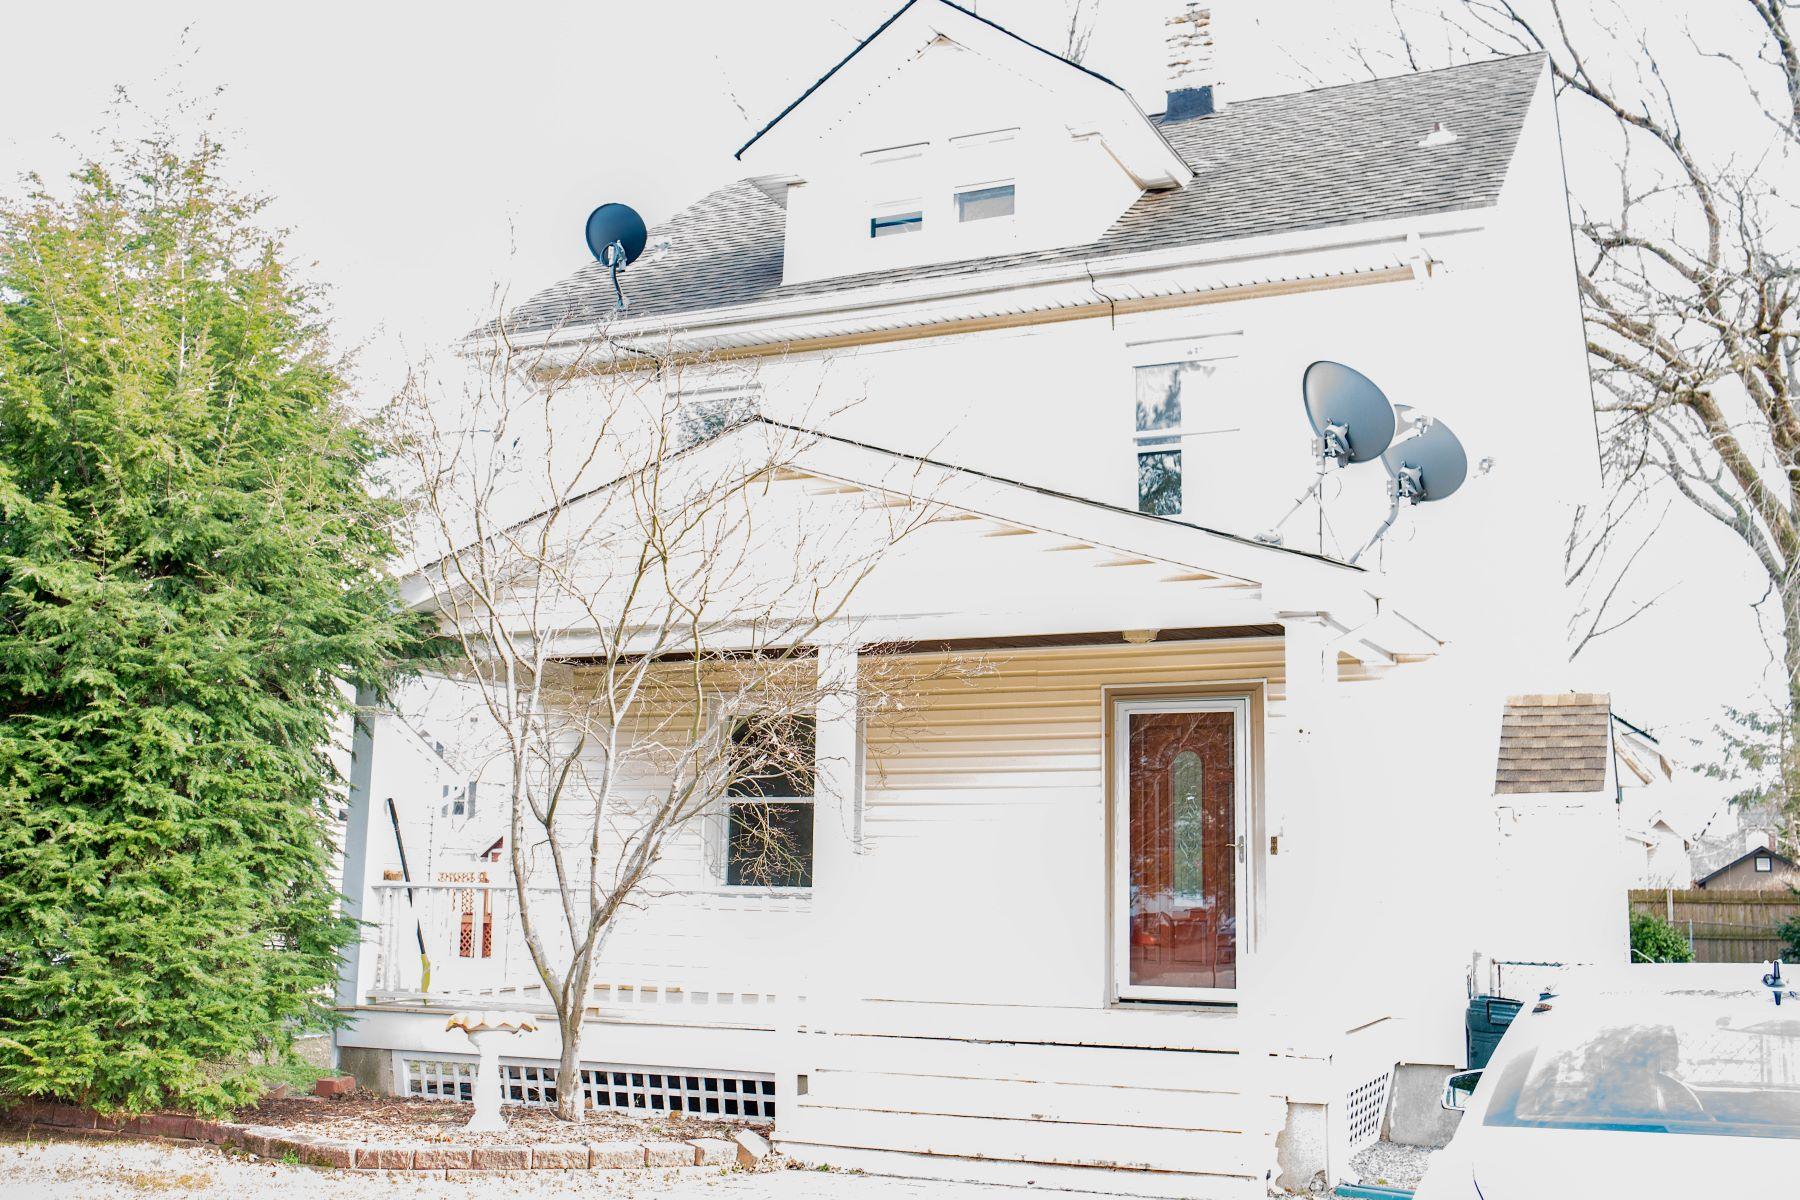 Multi-Family Home for Rent at Commuter's Dream 340 Bound Brook Road, Middlesex, New Jersey 08846 United States